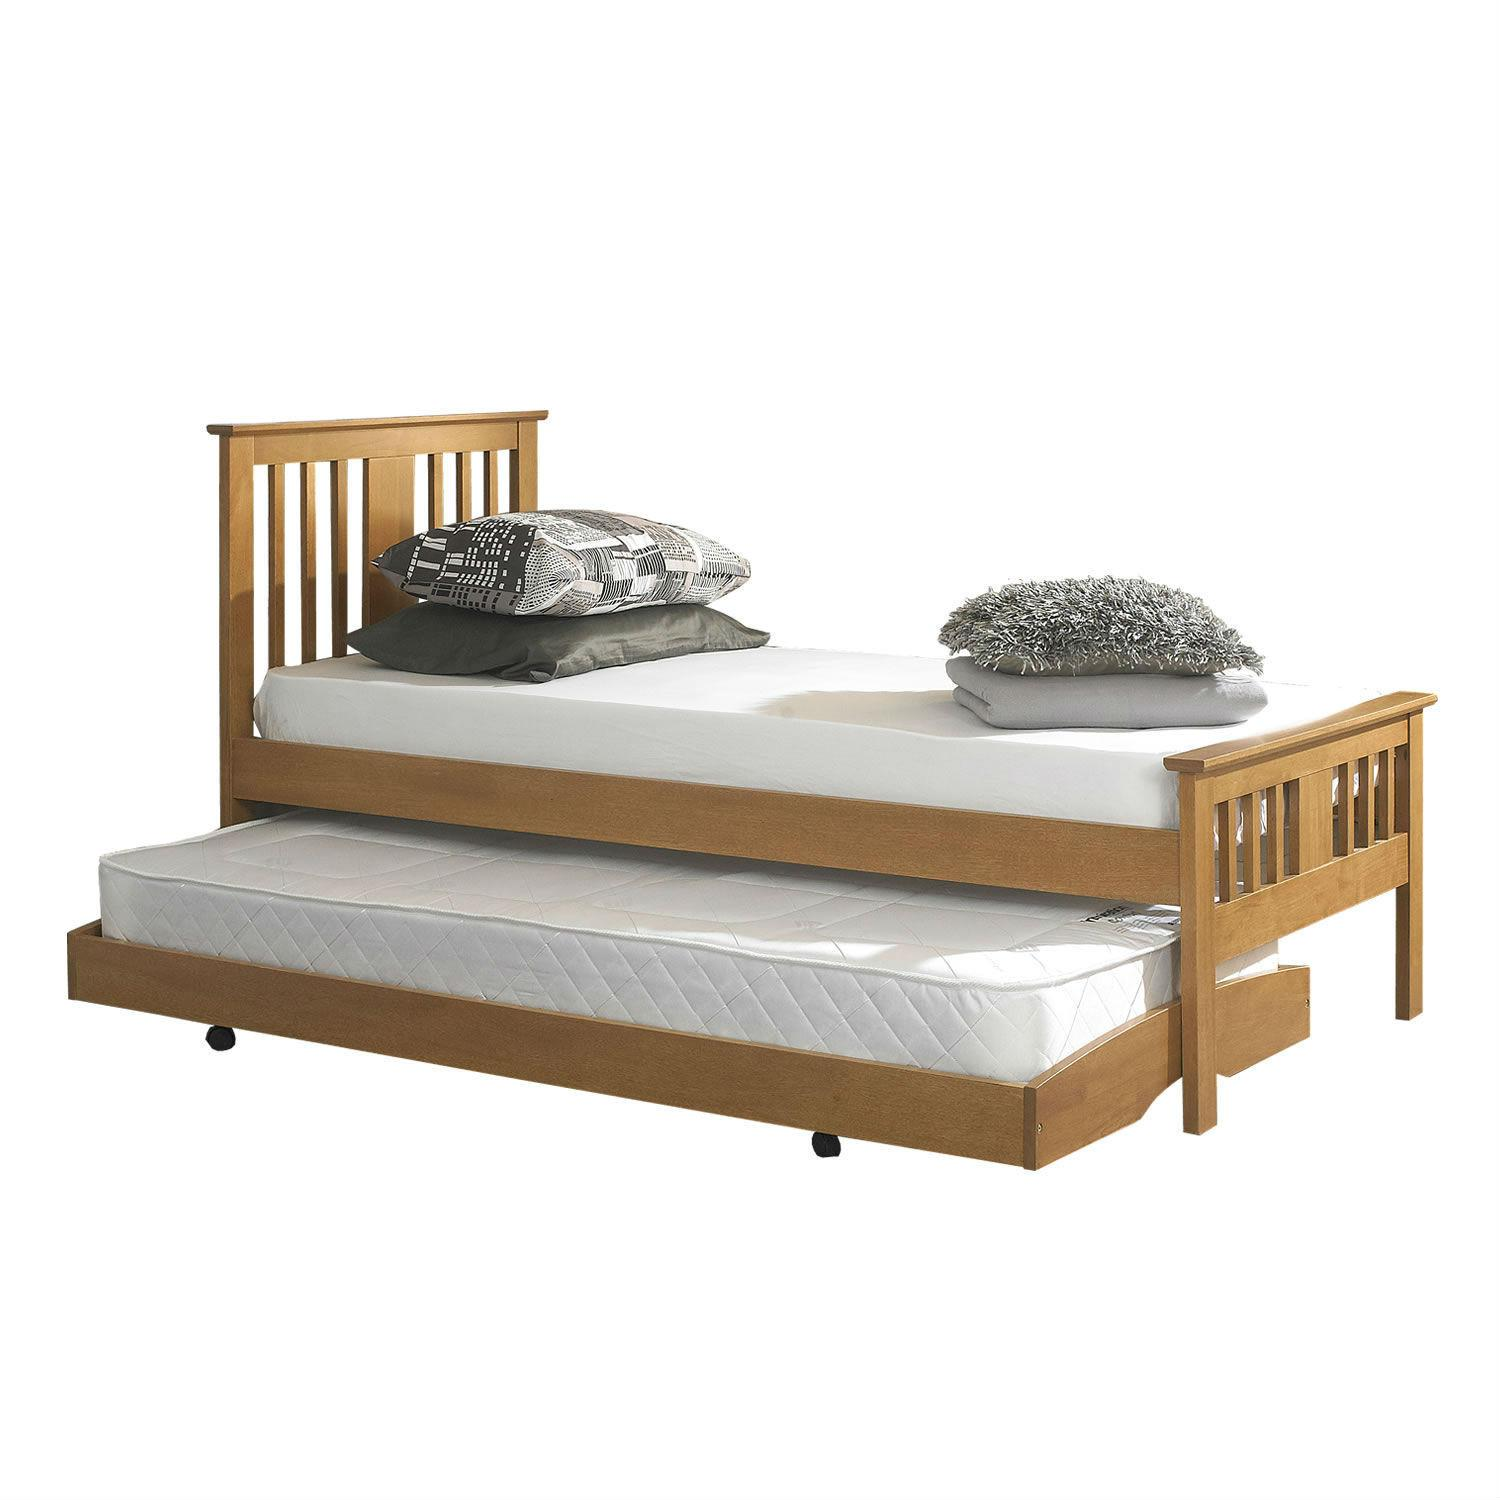 Osorno Guest Bed Trundle Next Day Delivery